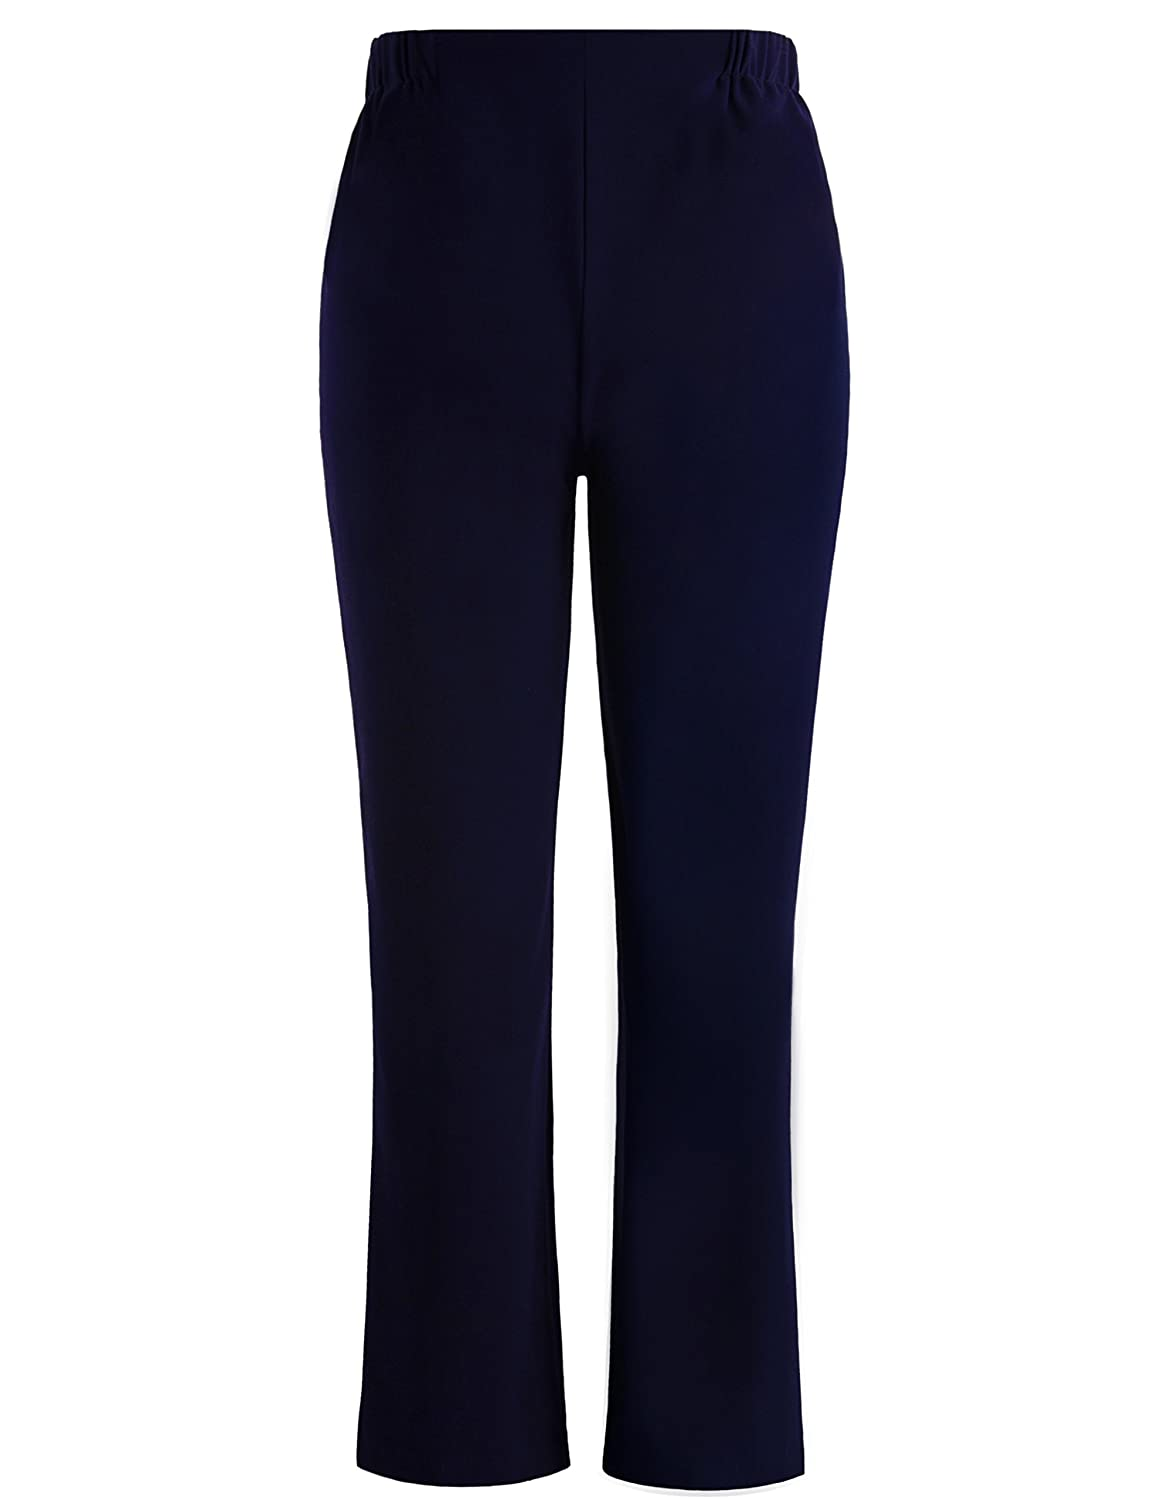 bb2e972133208d Chicwe Women's Plus Size Curvy Fit Boot Cut Pants - Casual and Work Pants  Trousers at Amazon Women's Clothing store: